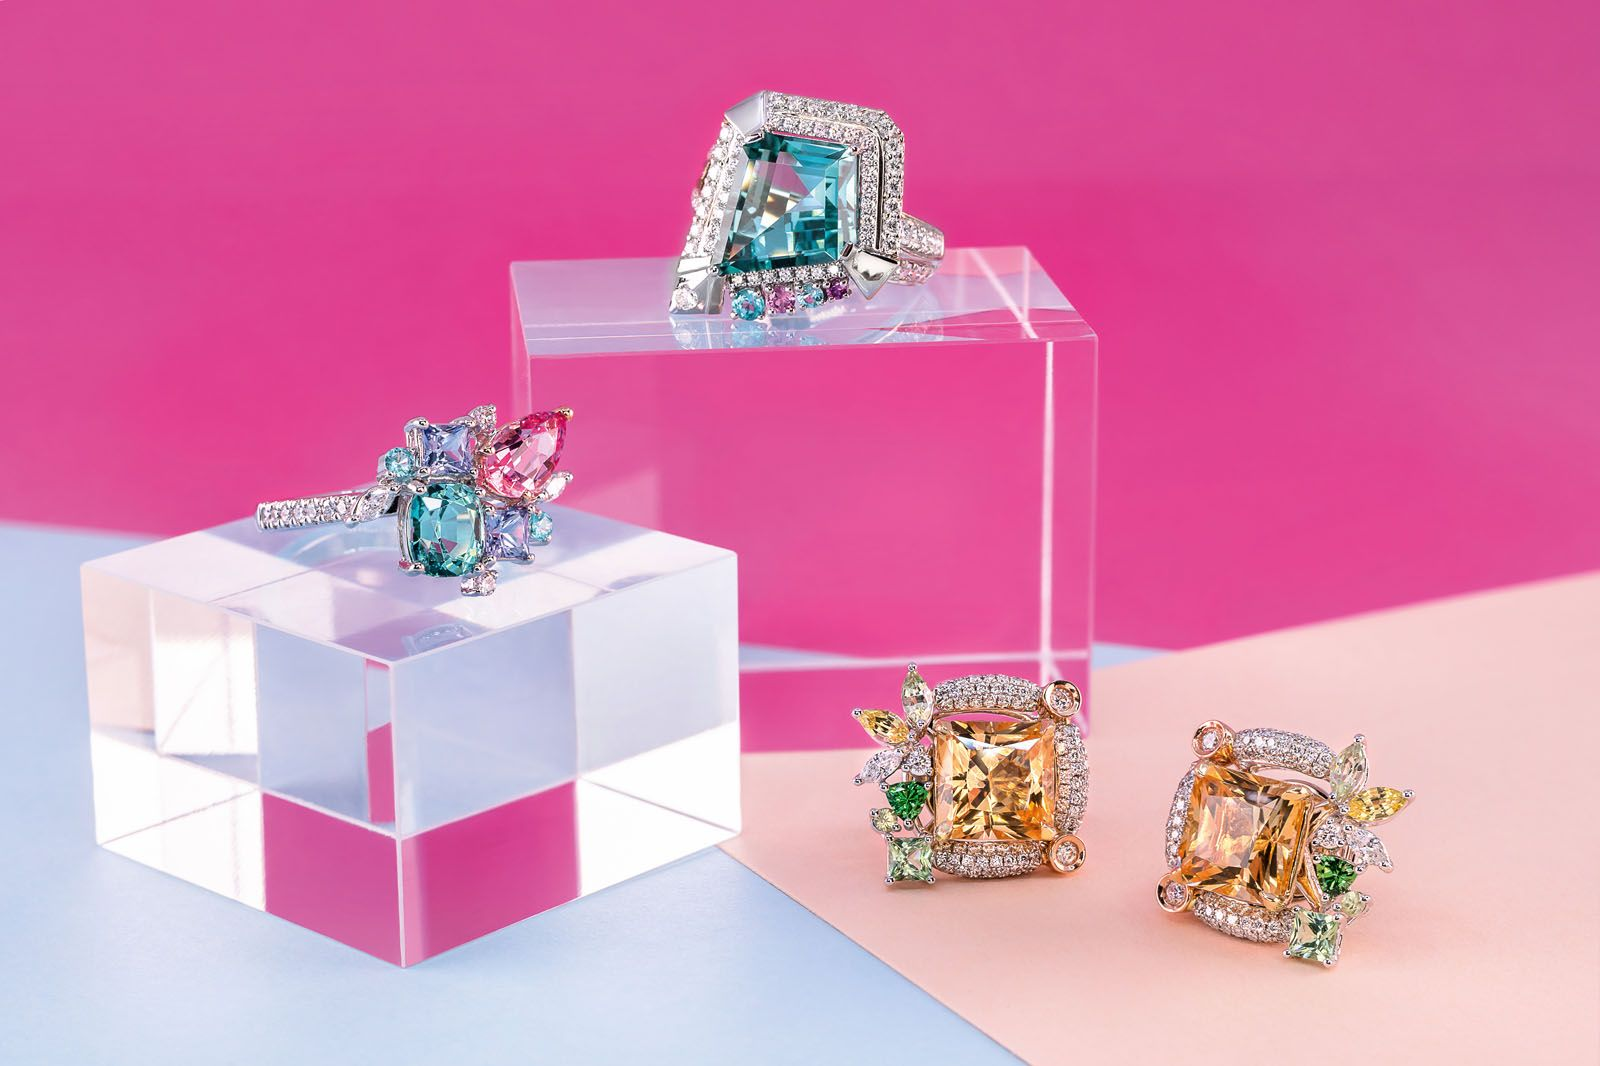 From left: Family ring in white gold with spinel, tourmaline, paraiba and tanzanite; cocktail ring in white gold with kite-cut lagoon tourmaline; earrings in white and rose gold (with removable earring jackets) with princess‑cut imperial topaz studs, tsavorites, yellow sapphires and diamonds